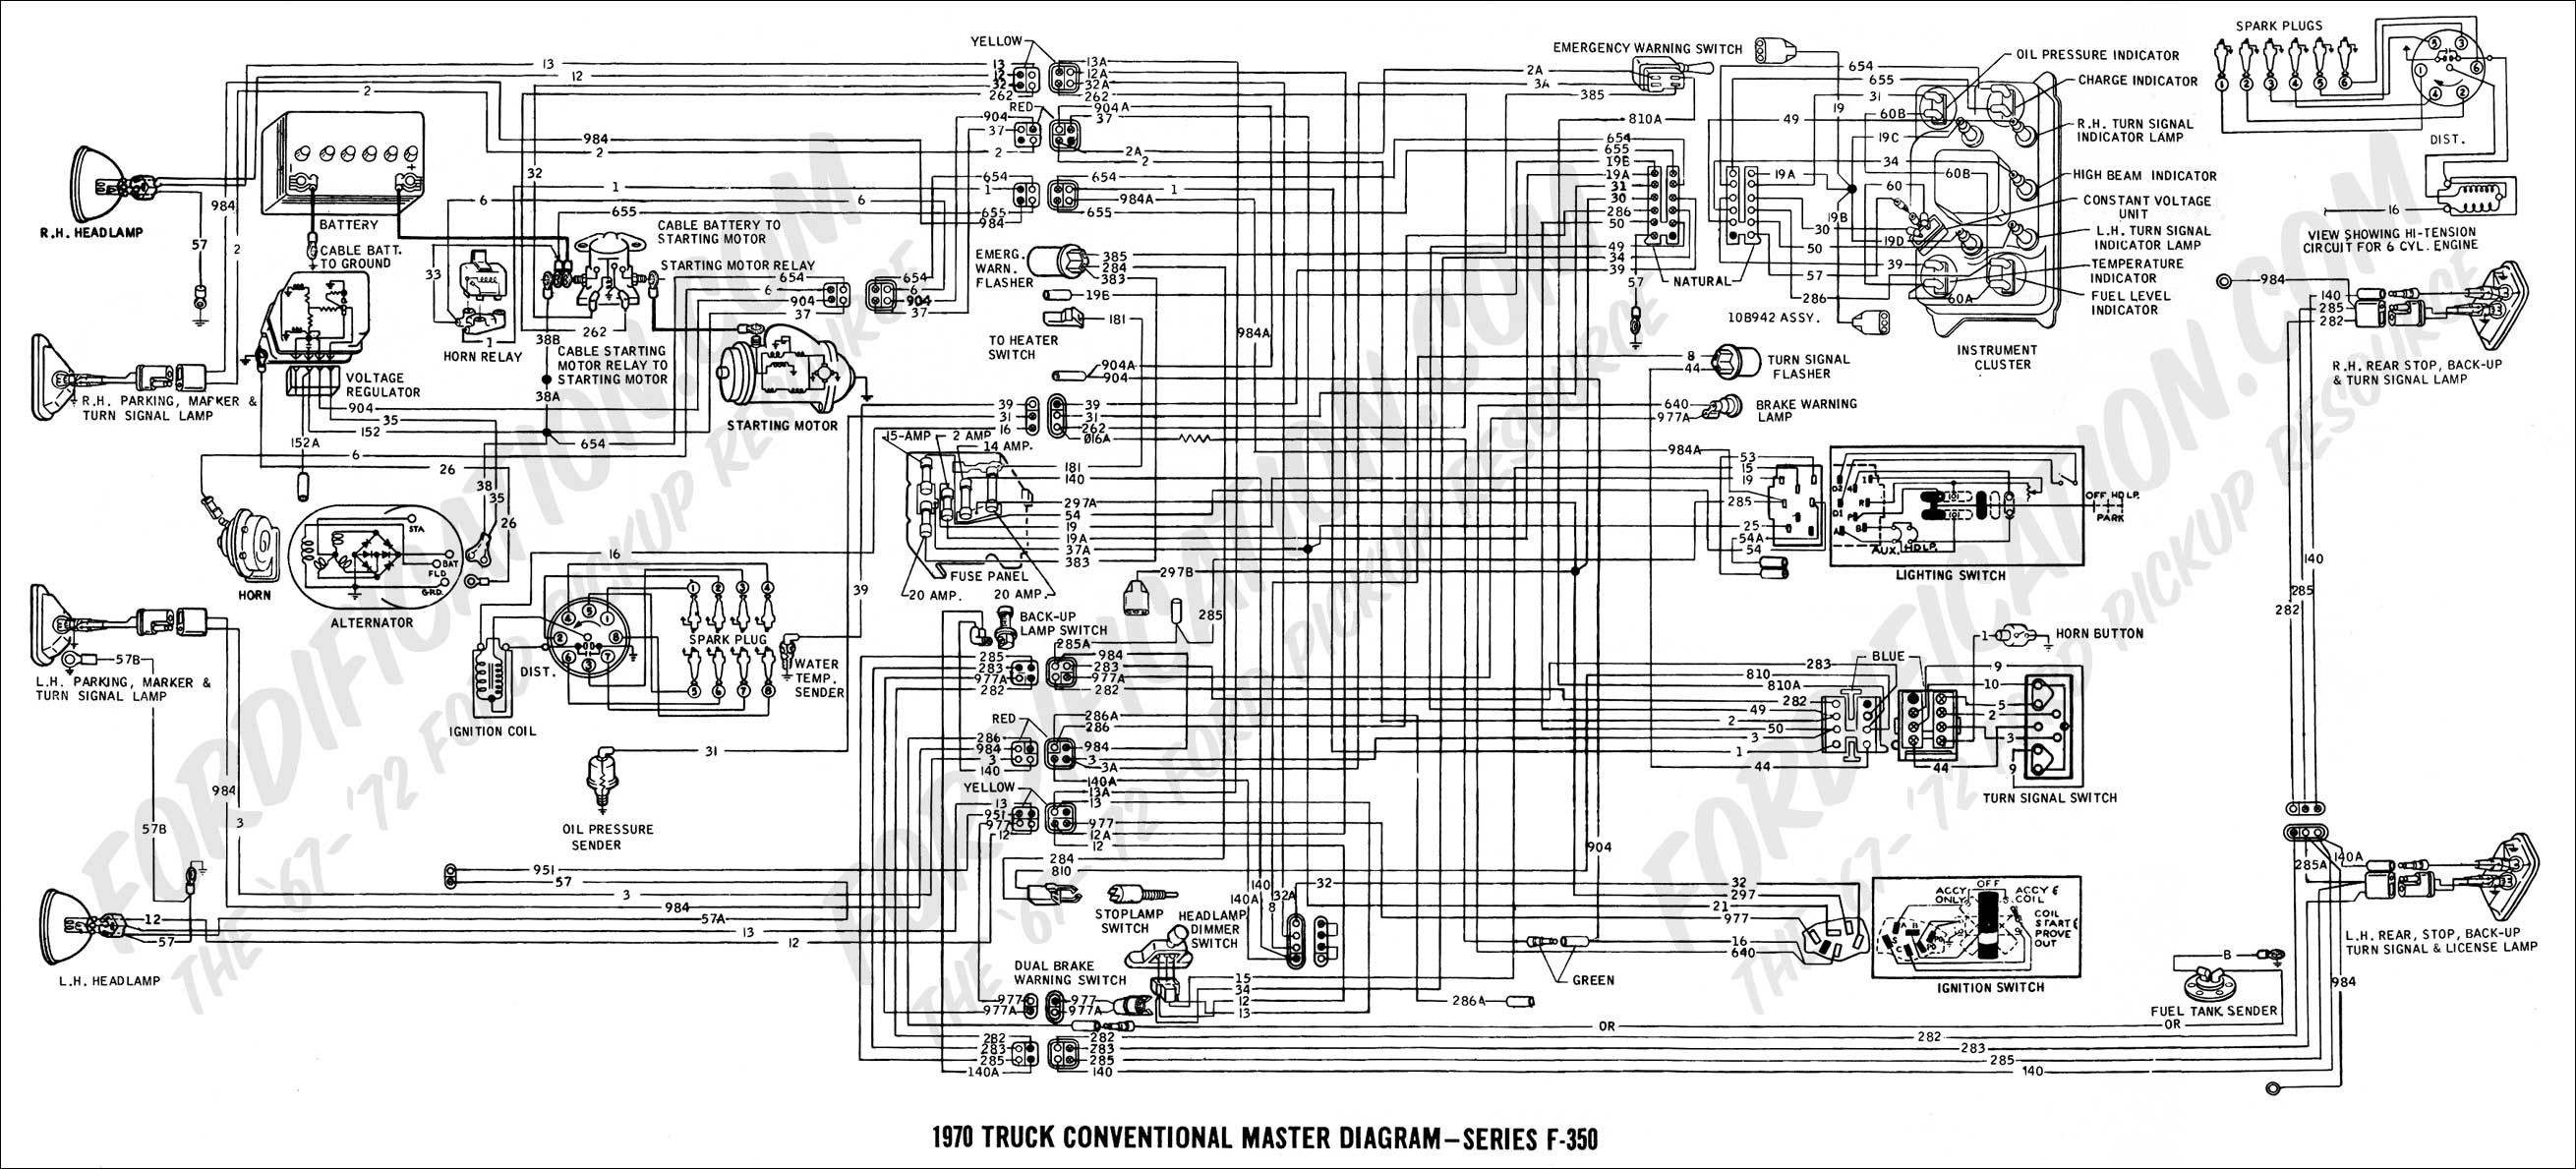 2004 Jeep Grand Cherokee Engine Diagram Transfer Switch Wiring Diagram Models V V V V Of 2004 Jeep Grand Cherokee Engine Diagram